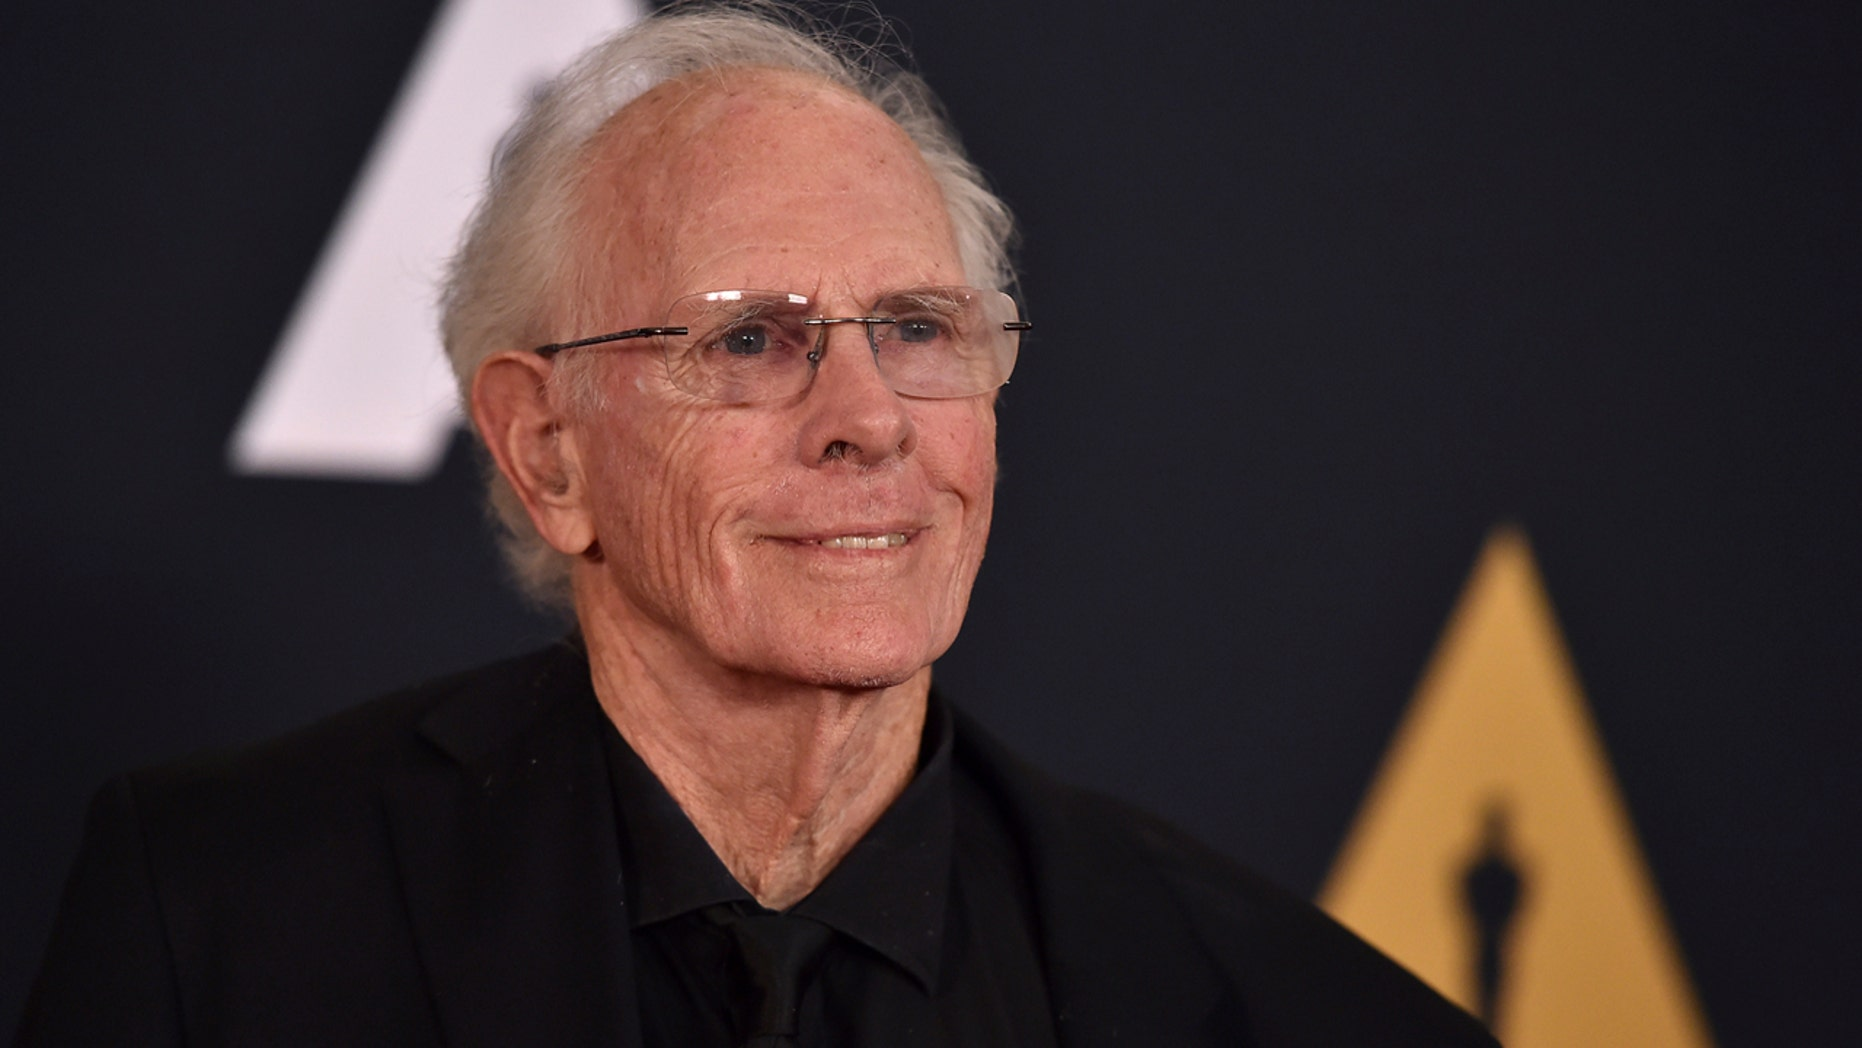 Bruce Dern arrives at the 2016 Governors Awards in Los Angeles. Dern has been released from the hospital after a fall during his daily jog in Los Angeles.